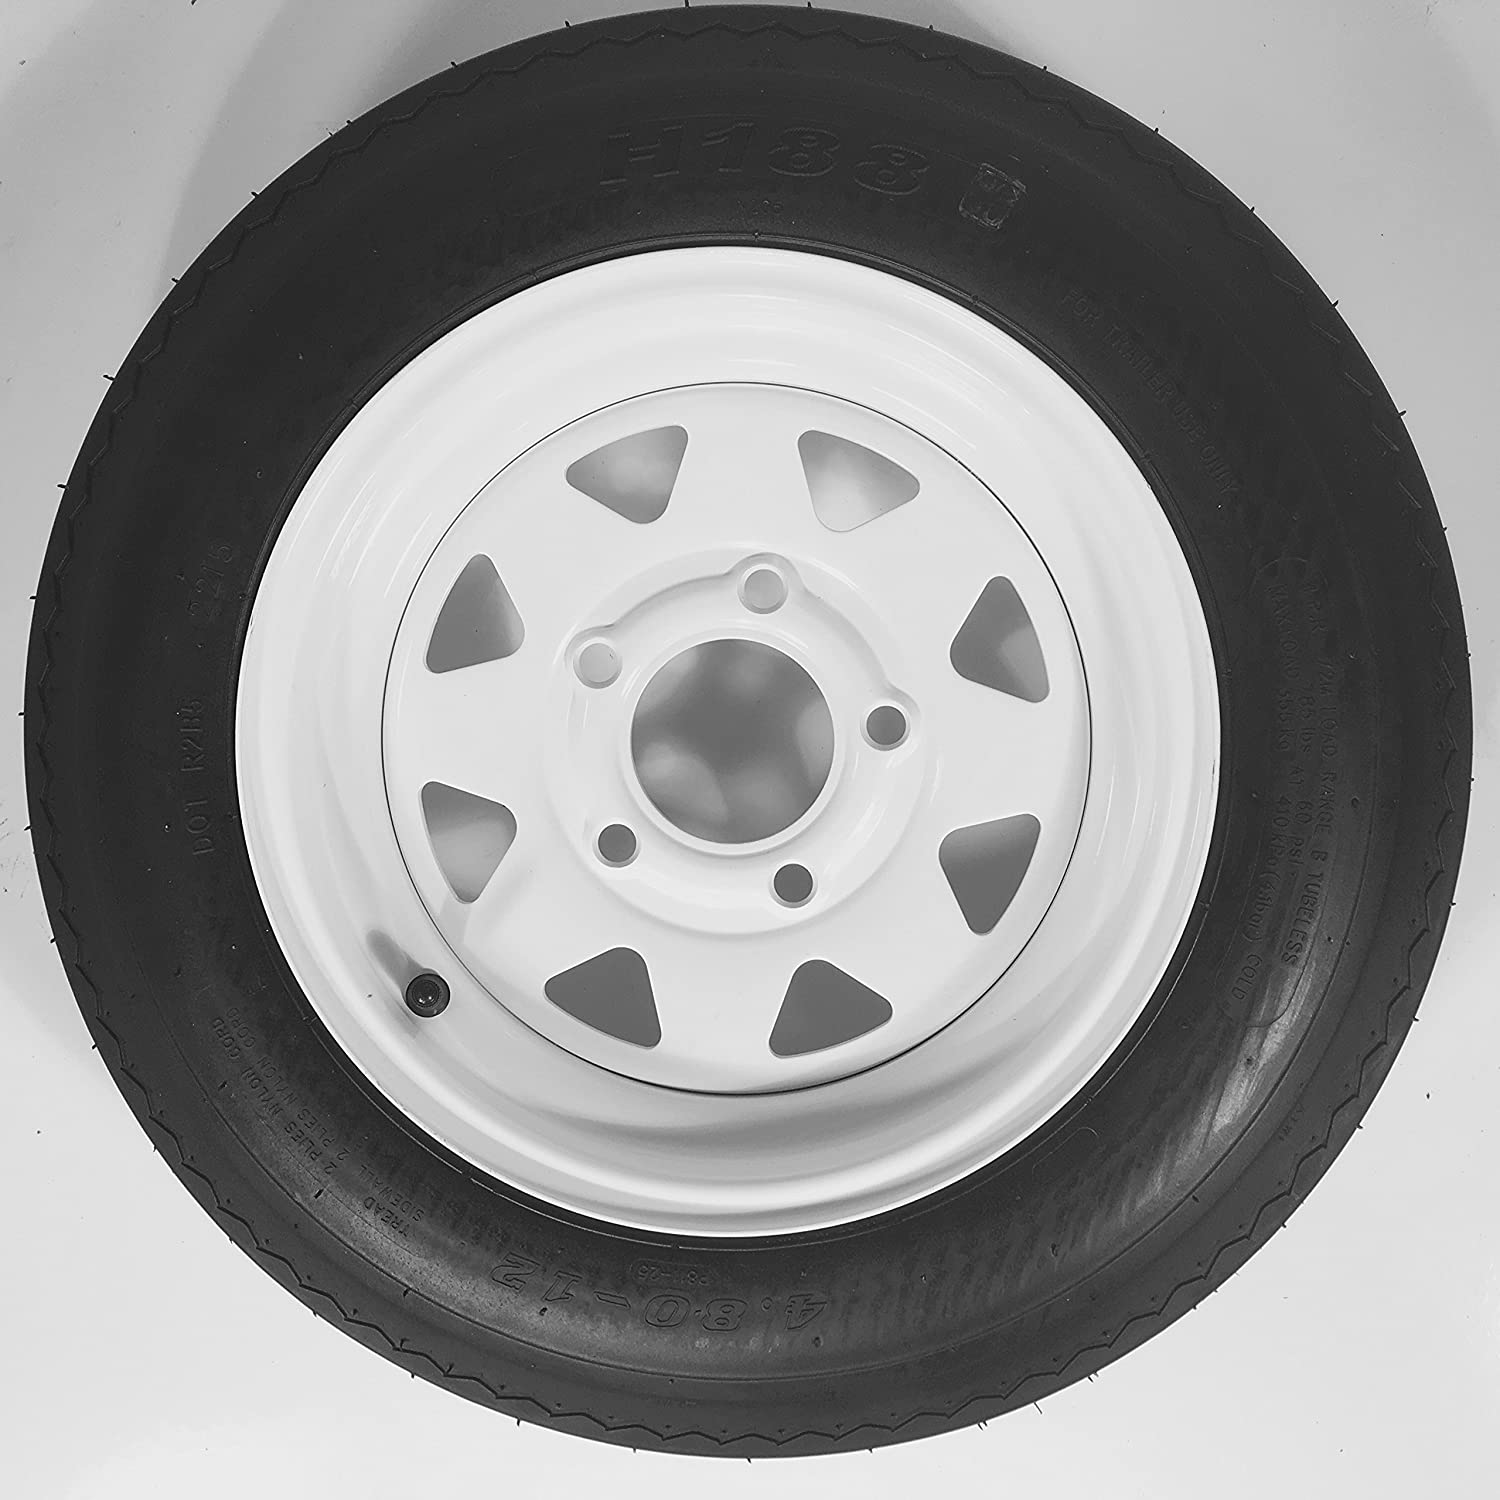 Amazon eCustomRim Trailer Tire Rim 4 80 12 480 12 4 80 X 12